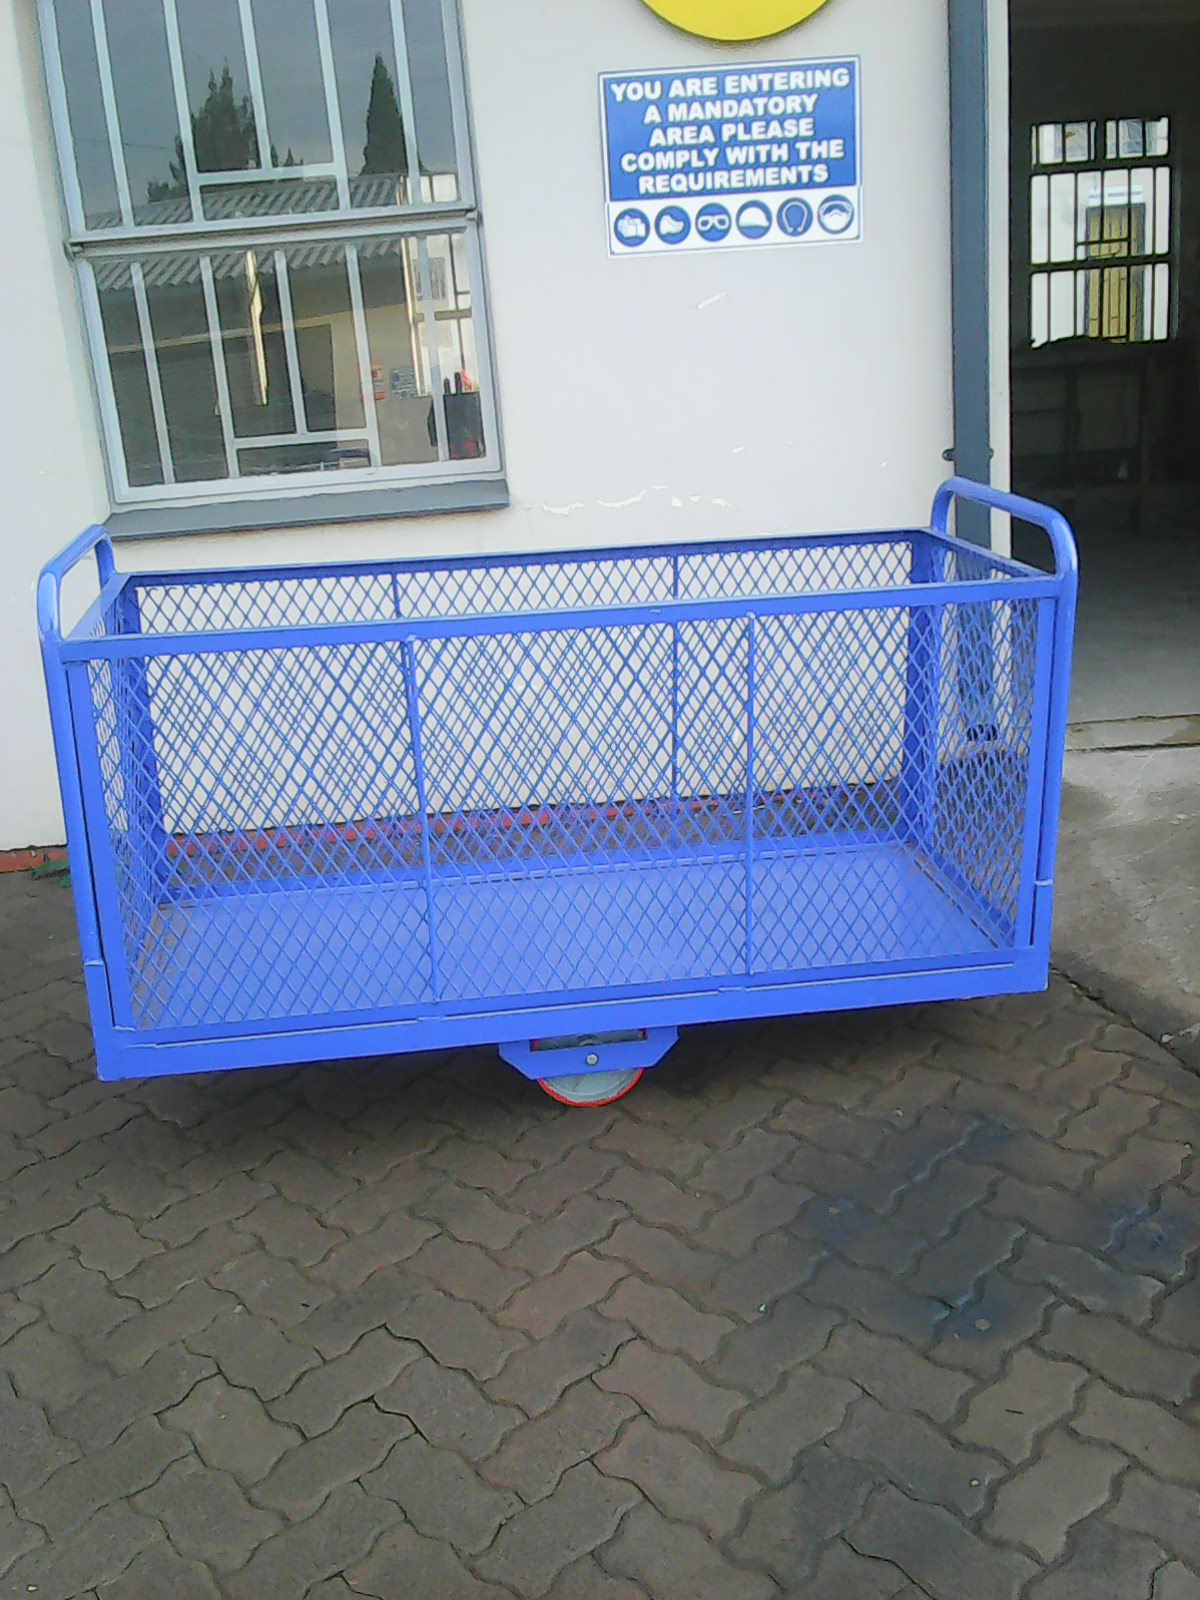 We manufacturing all kind of trolleys,welding,Palisades,Fabrication,frame structure